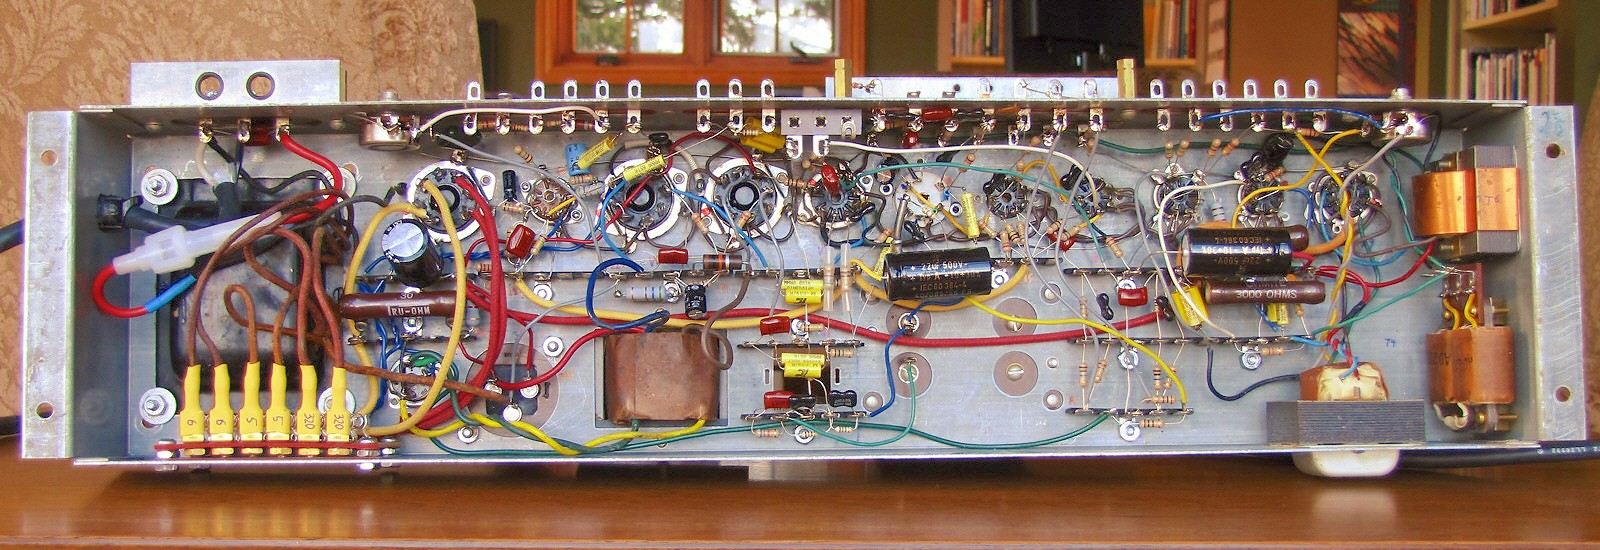 Rebuilding a Hammond AO-29 Amplifier from the Ground Up on hammond pr40, hammond organ, hammond hr 40 tone cabinet, hammond cv amp rebuild, hammond cv pre amp repair,